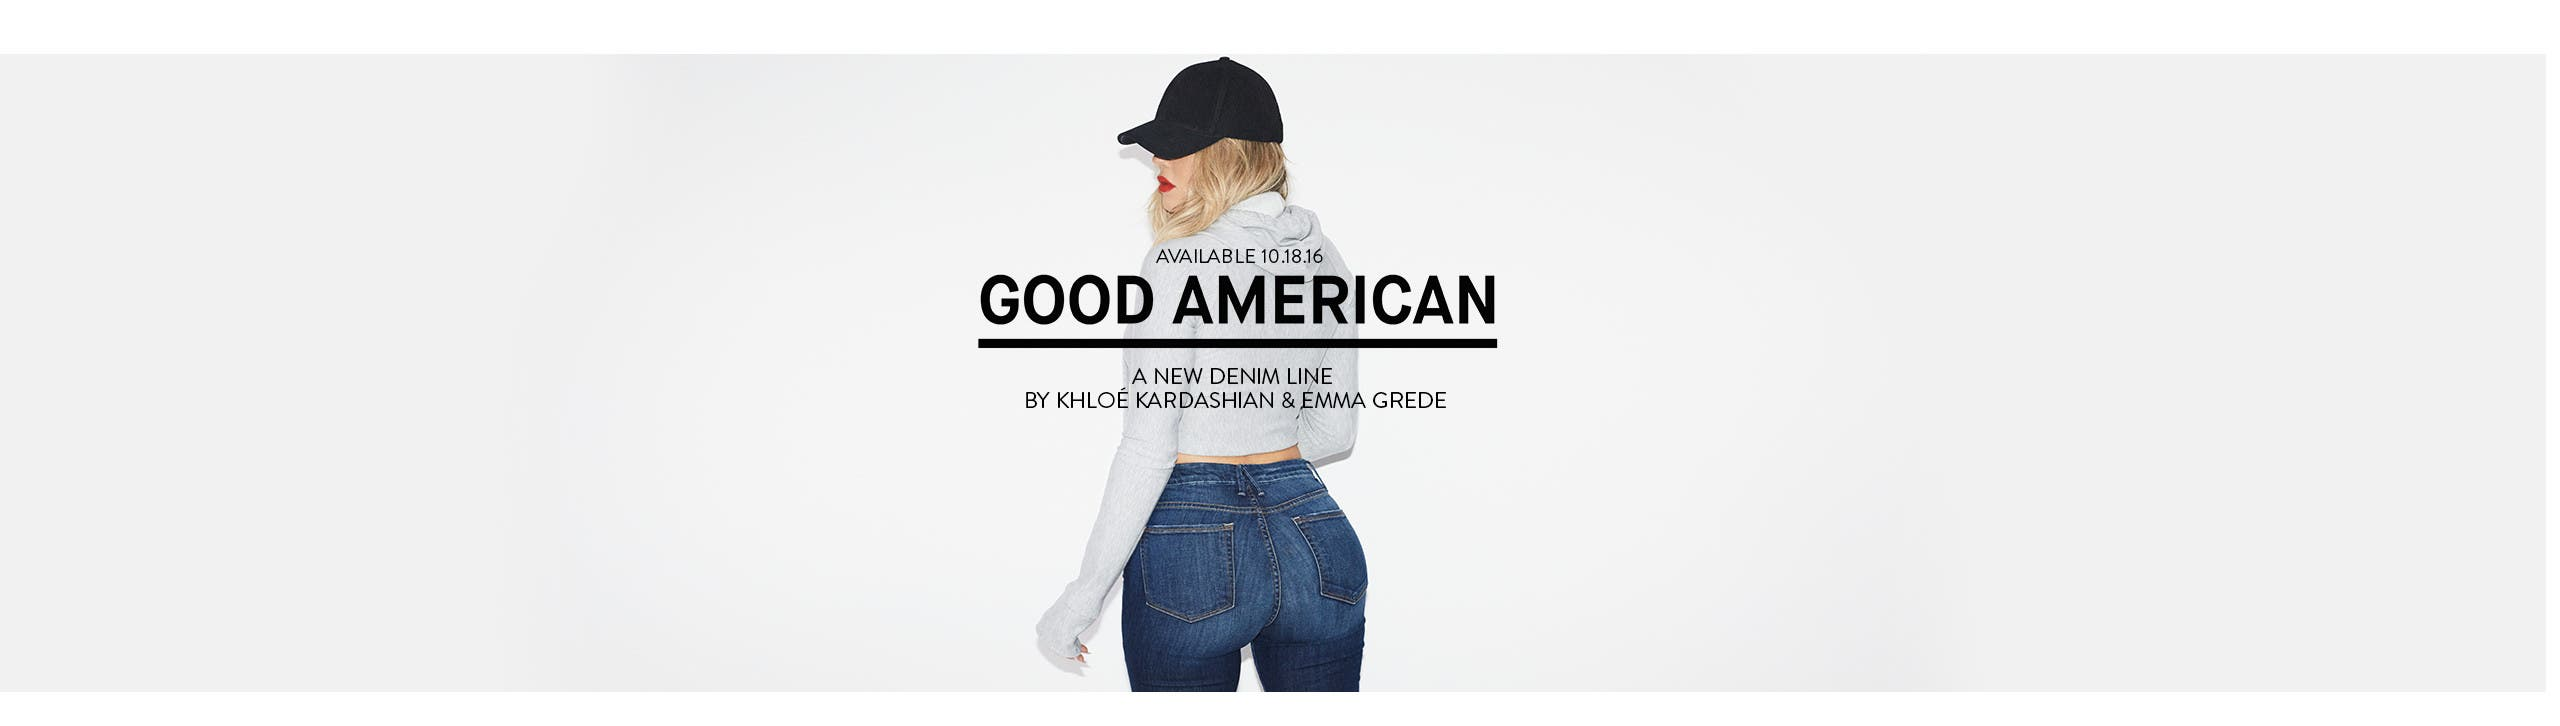 Available 10.18.16: Good American denim.